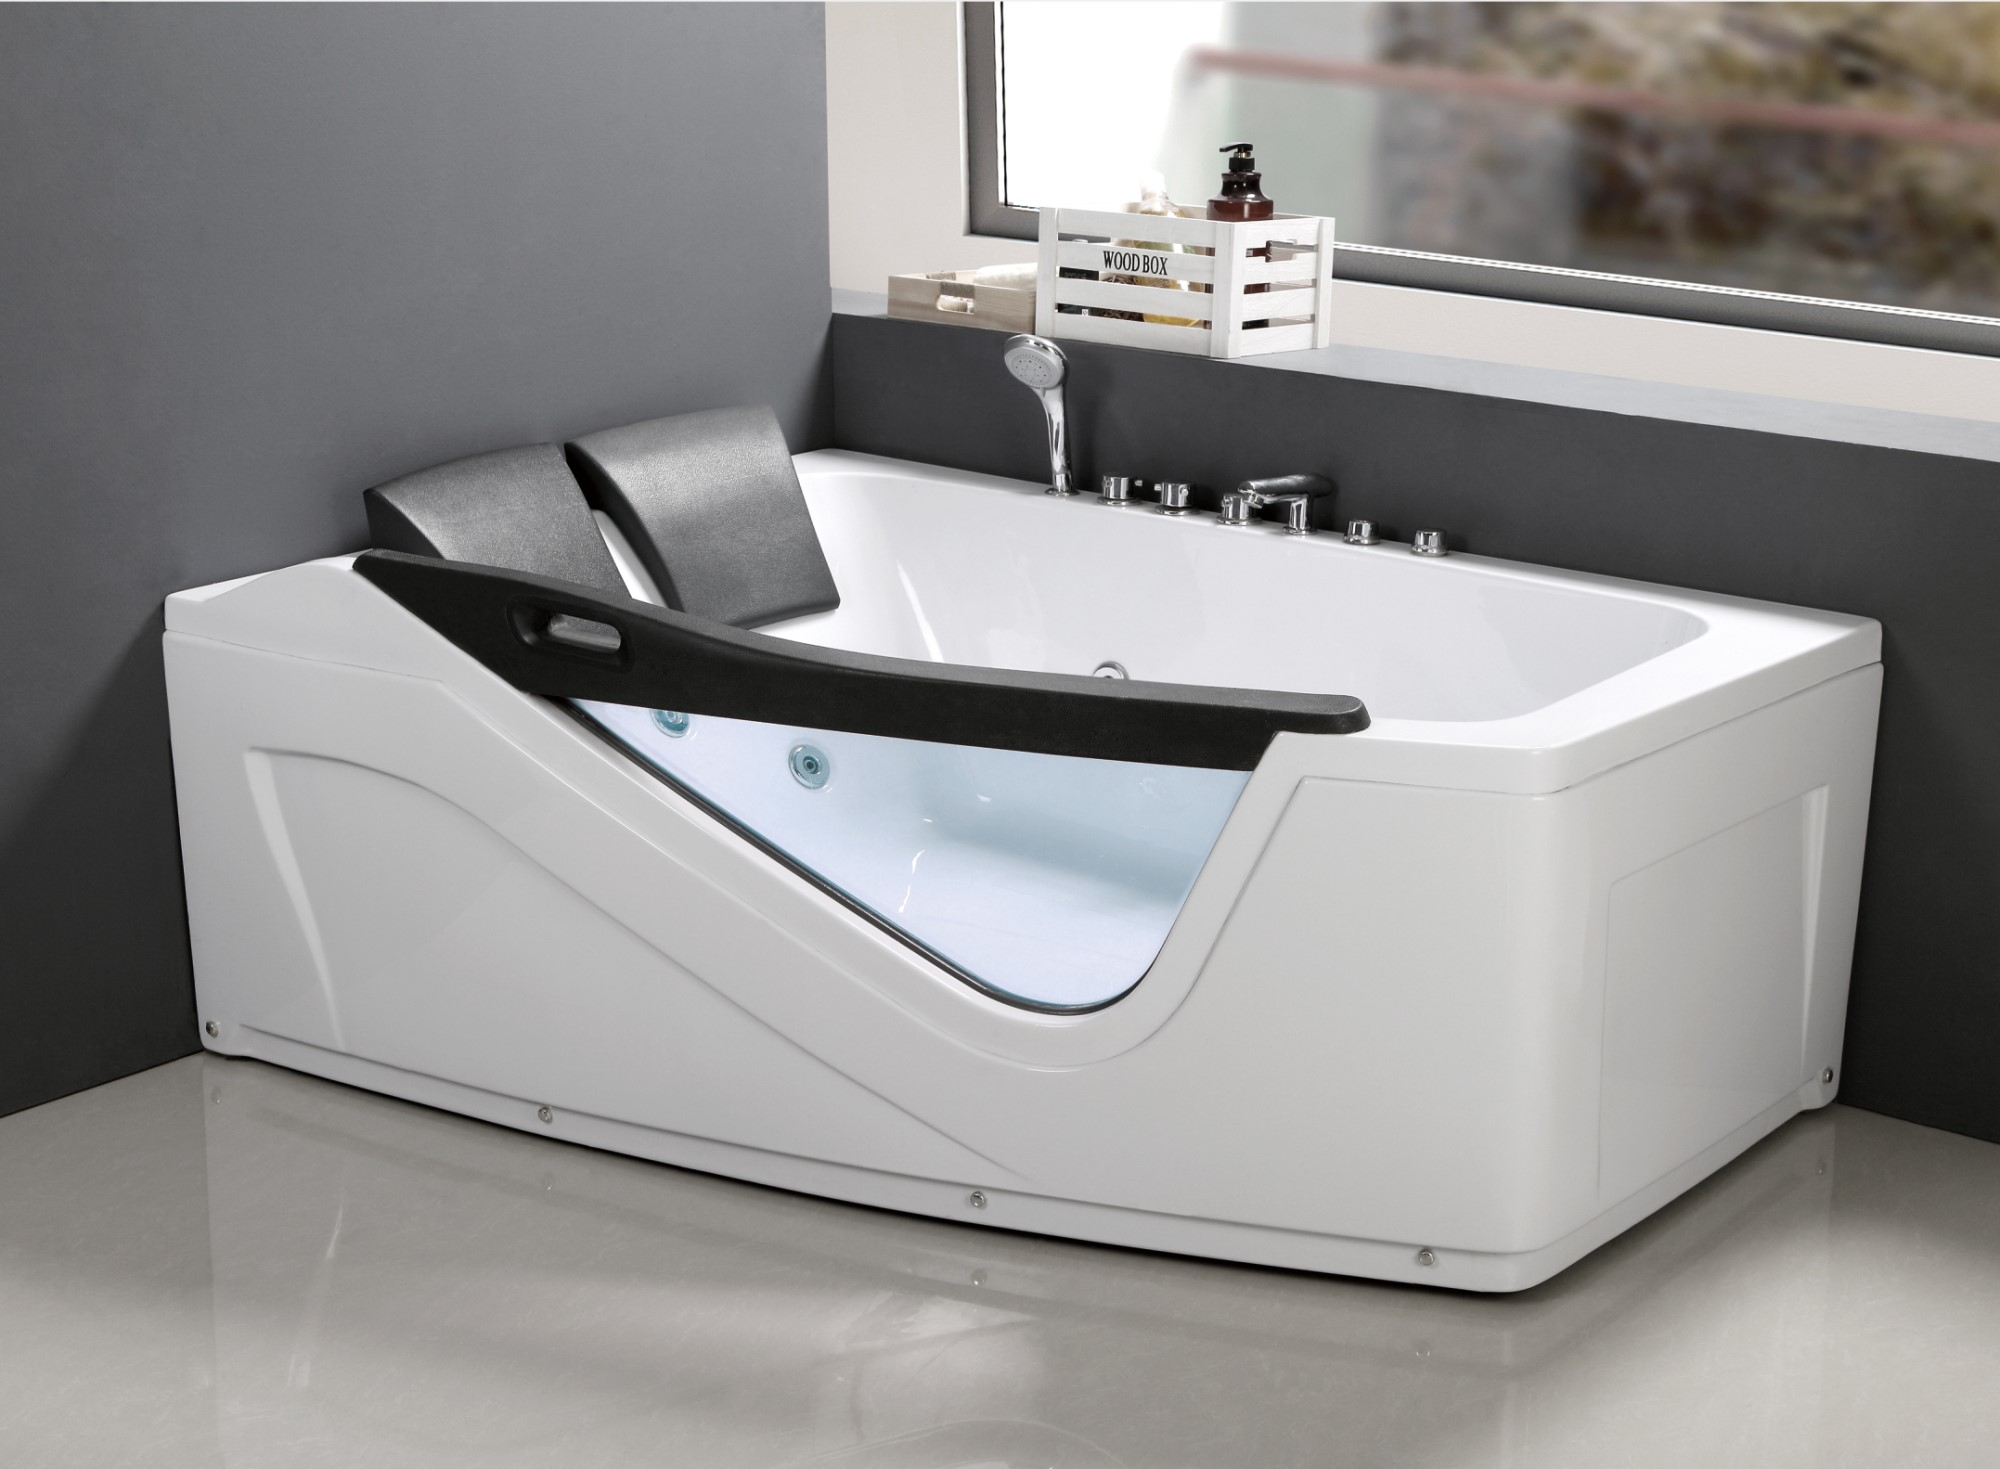 C-036(R) Irregular Shape Two 2 Person Luxury Jetted ABS Glass Hot Tub Bathroom Bathtub for Sale_副本.jpg